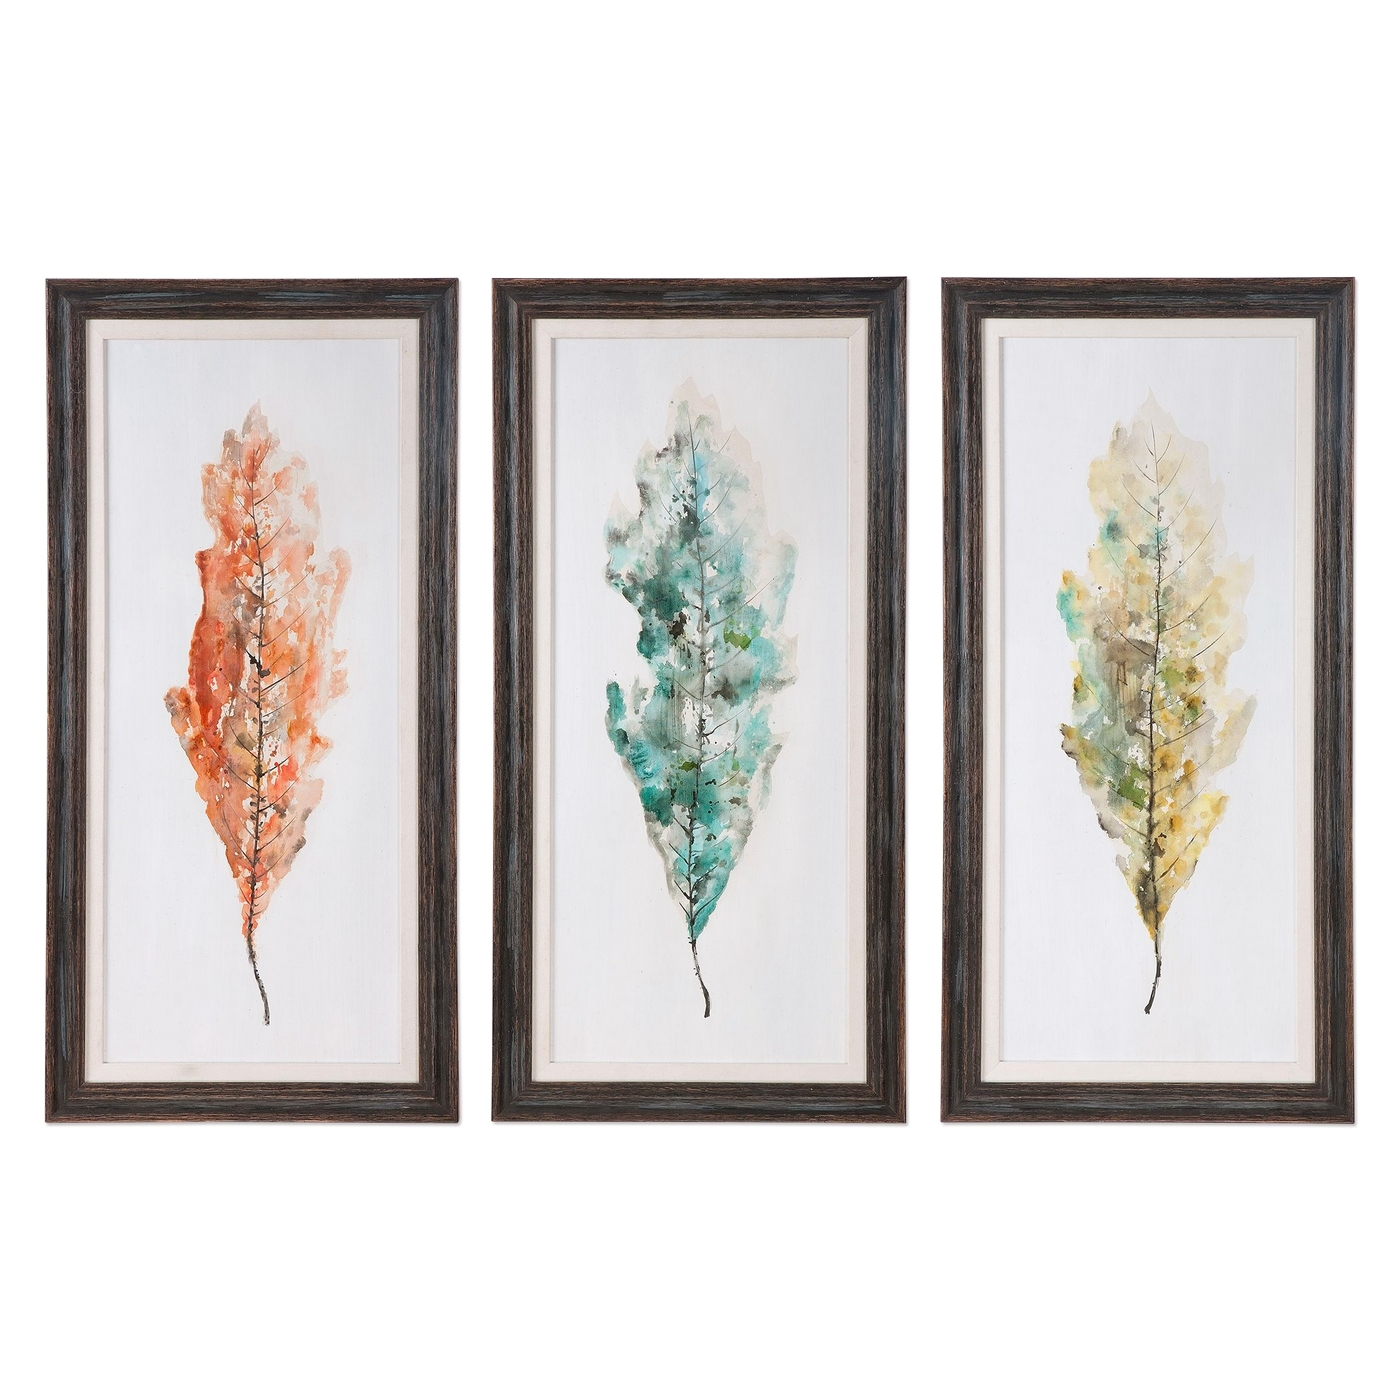 Framed Wall Art Sets Of 3 Set Of 3 Hand Painted Tricolor Leaves Wall Art On Pine